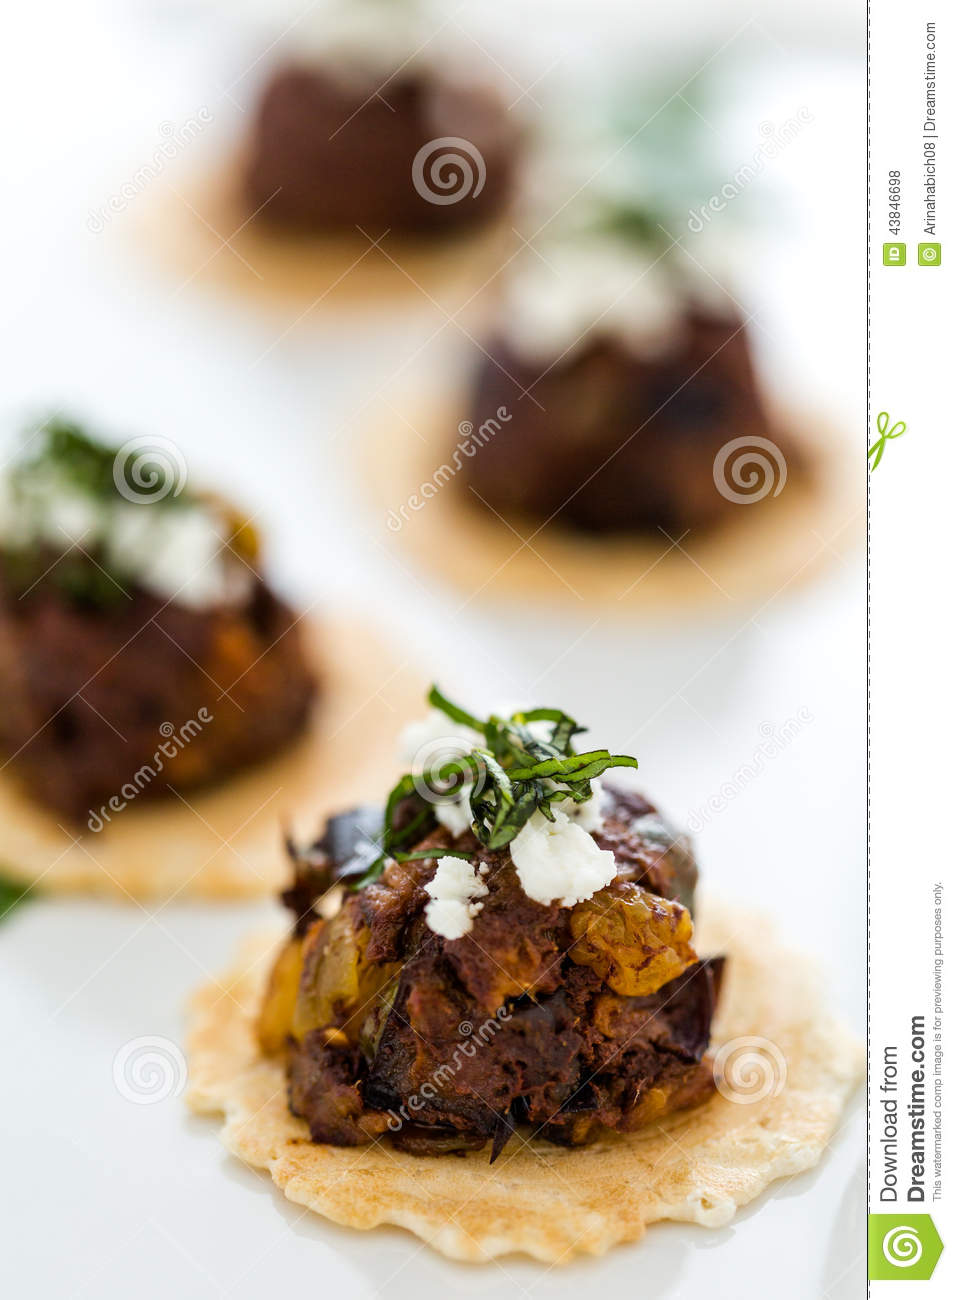 Micro Bruschetta of Chocolate Eggplant Caponata with Chocolate ...